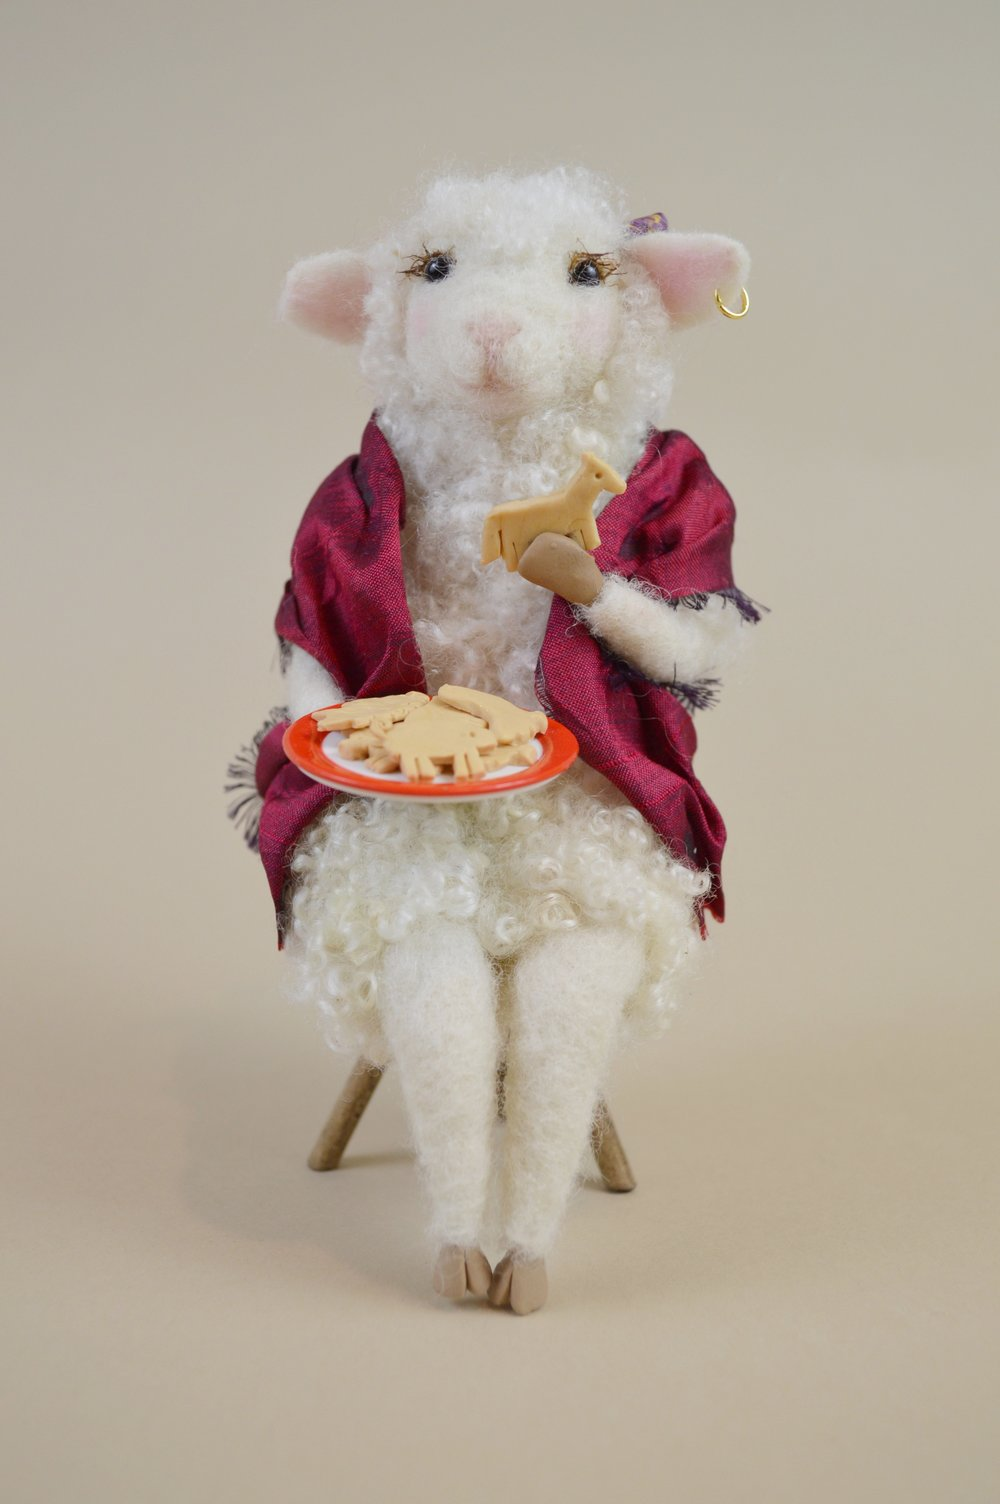 Gypsy, the Animal Cracker Loving Sheep